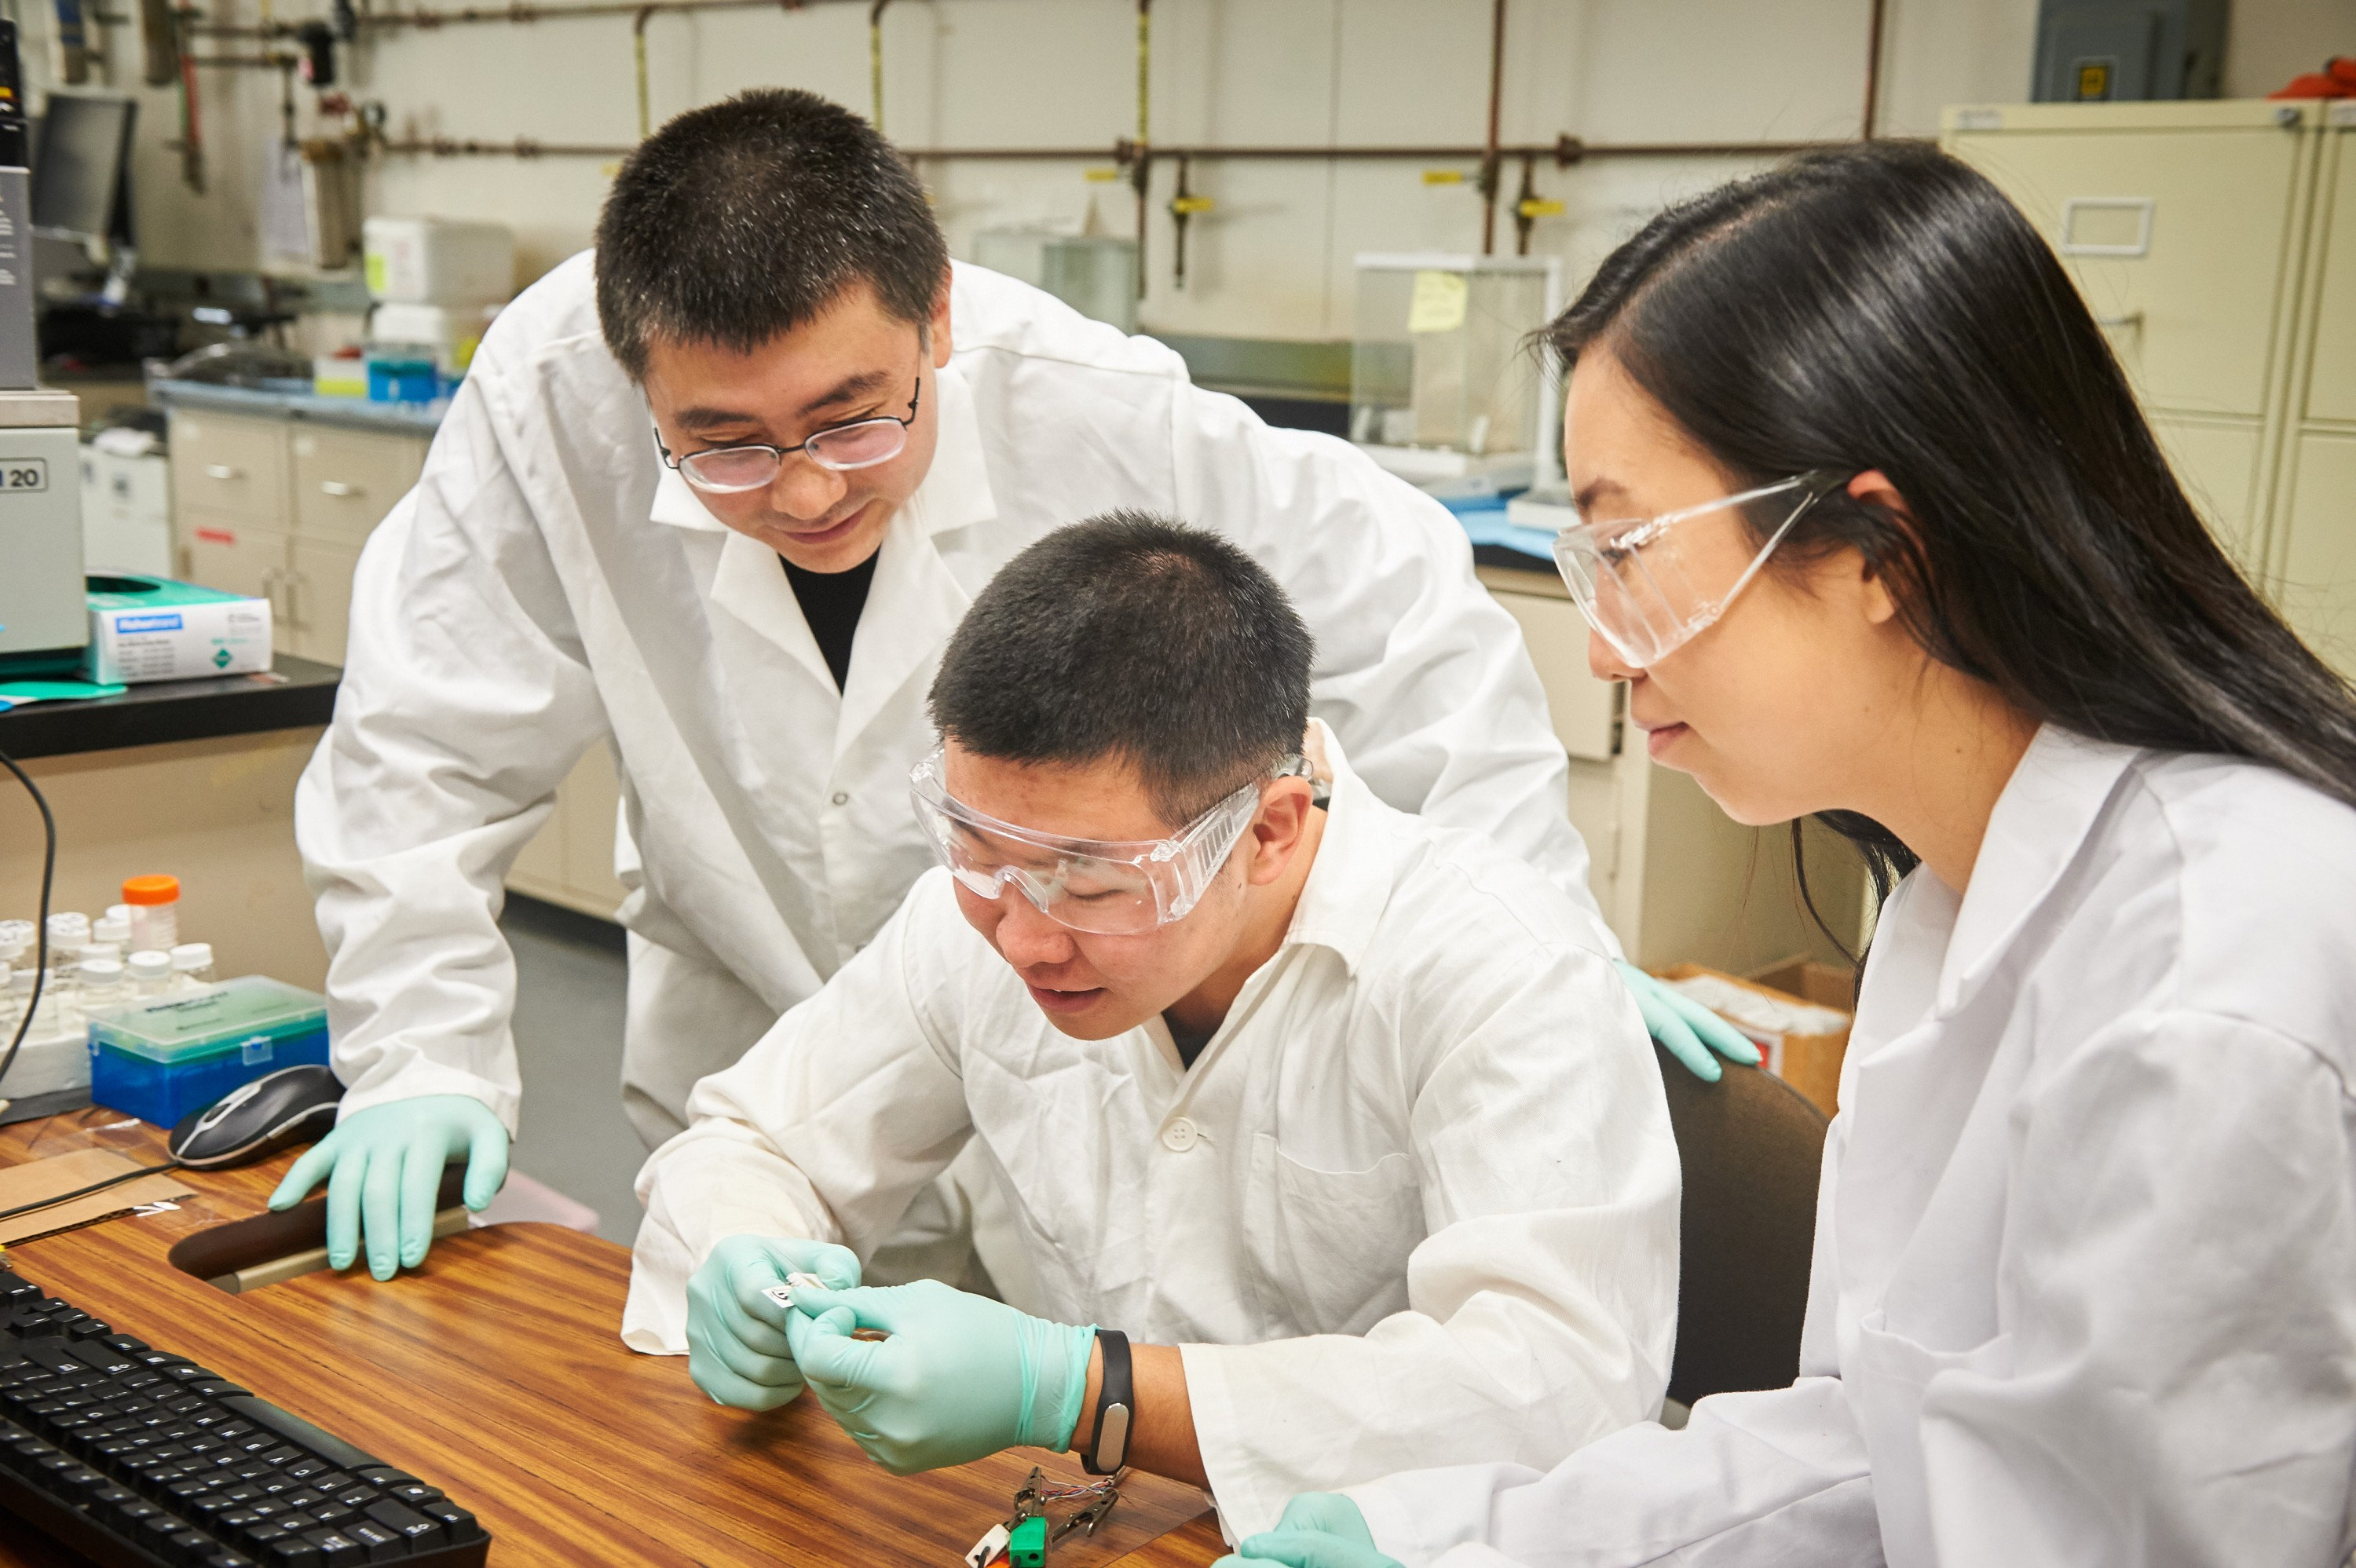 Yu Lei, associate professor of chemical & biomolecular engineering, left, and graduate students Qiuchen Dong and Xiaoyu Ma connect a toxic chemical sensor to a cable in a lab at the United Technologies Engineering Building on Feb. 2, 2016. (Peter Morenus/UConn Photo)